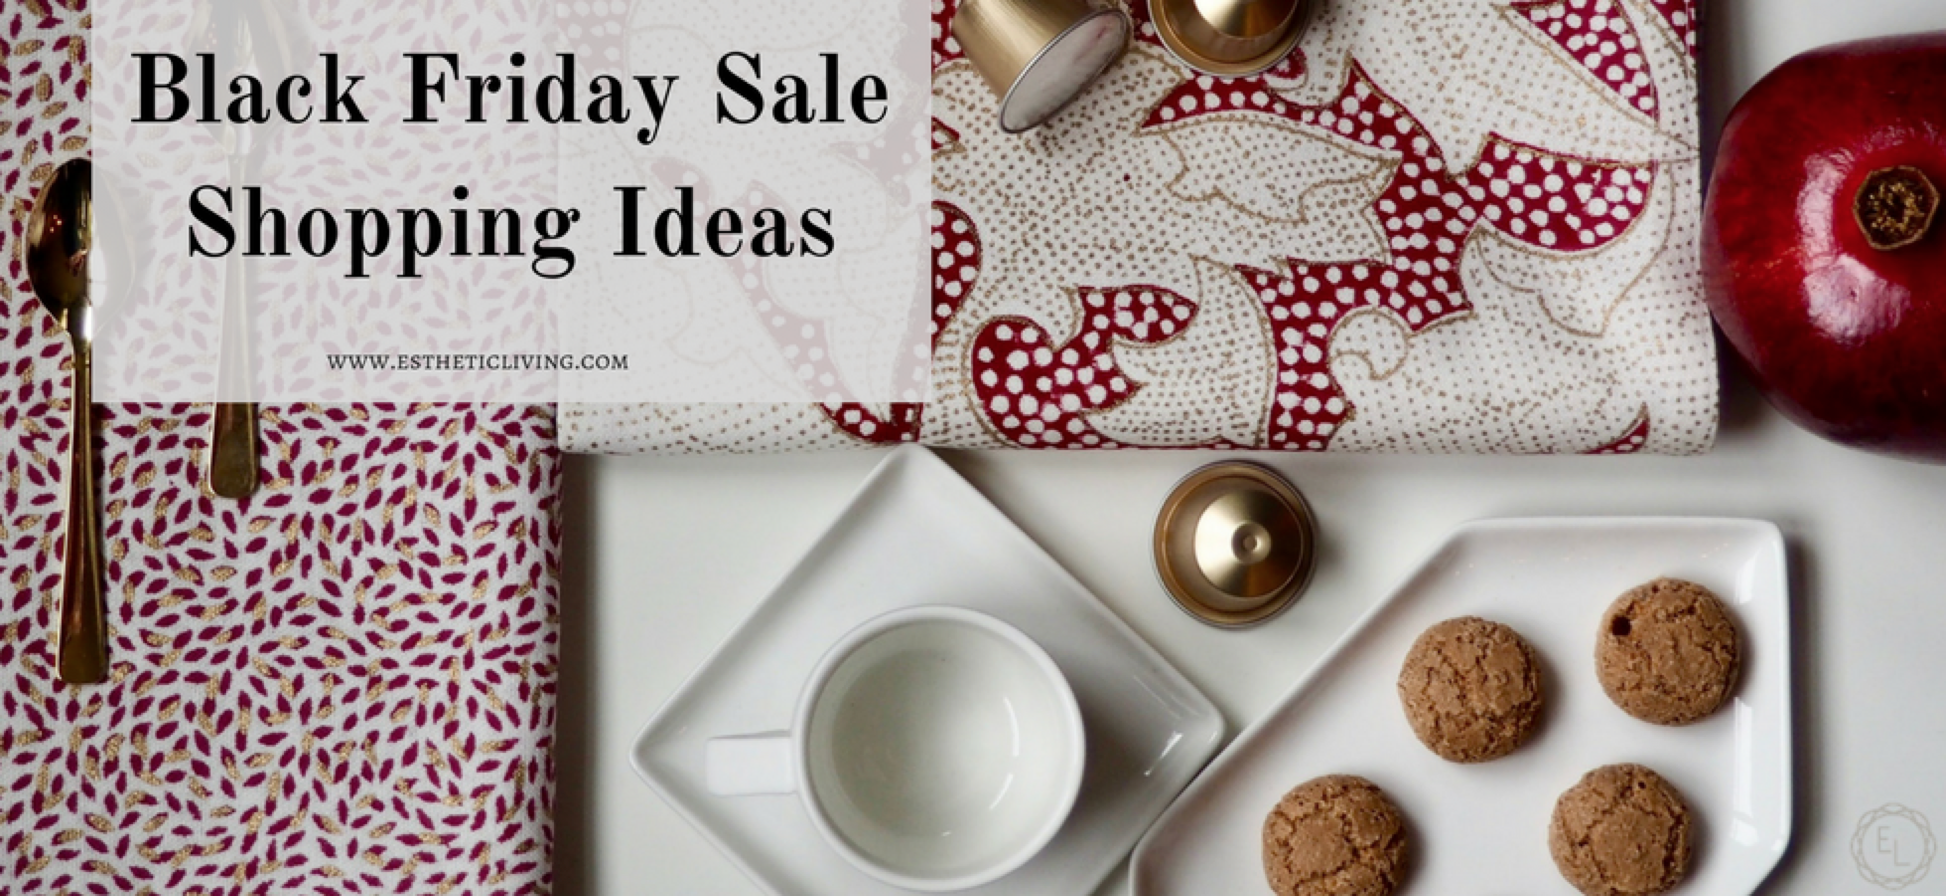 Esthetic Living Black Friday Sale